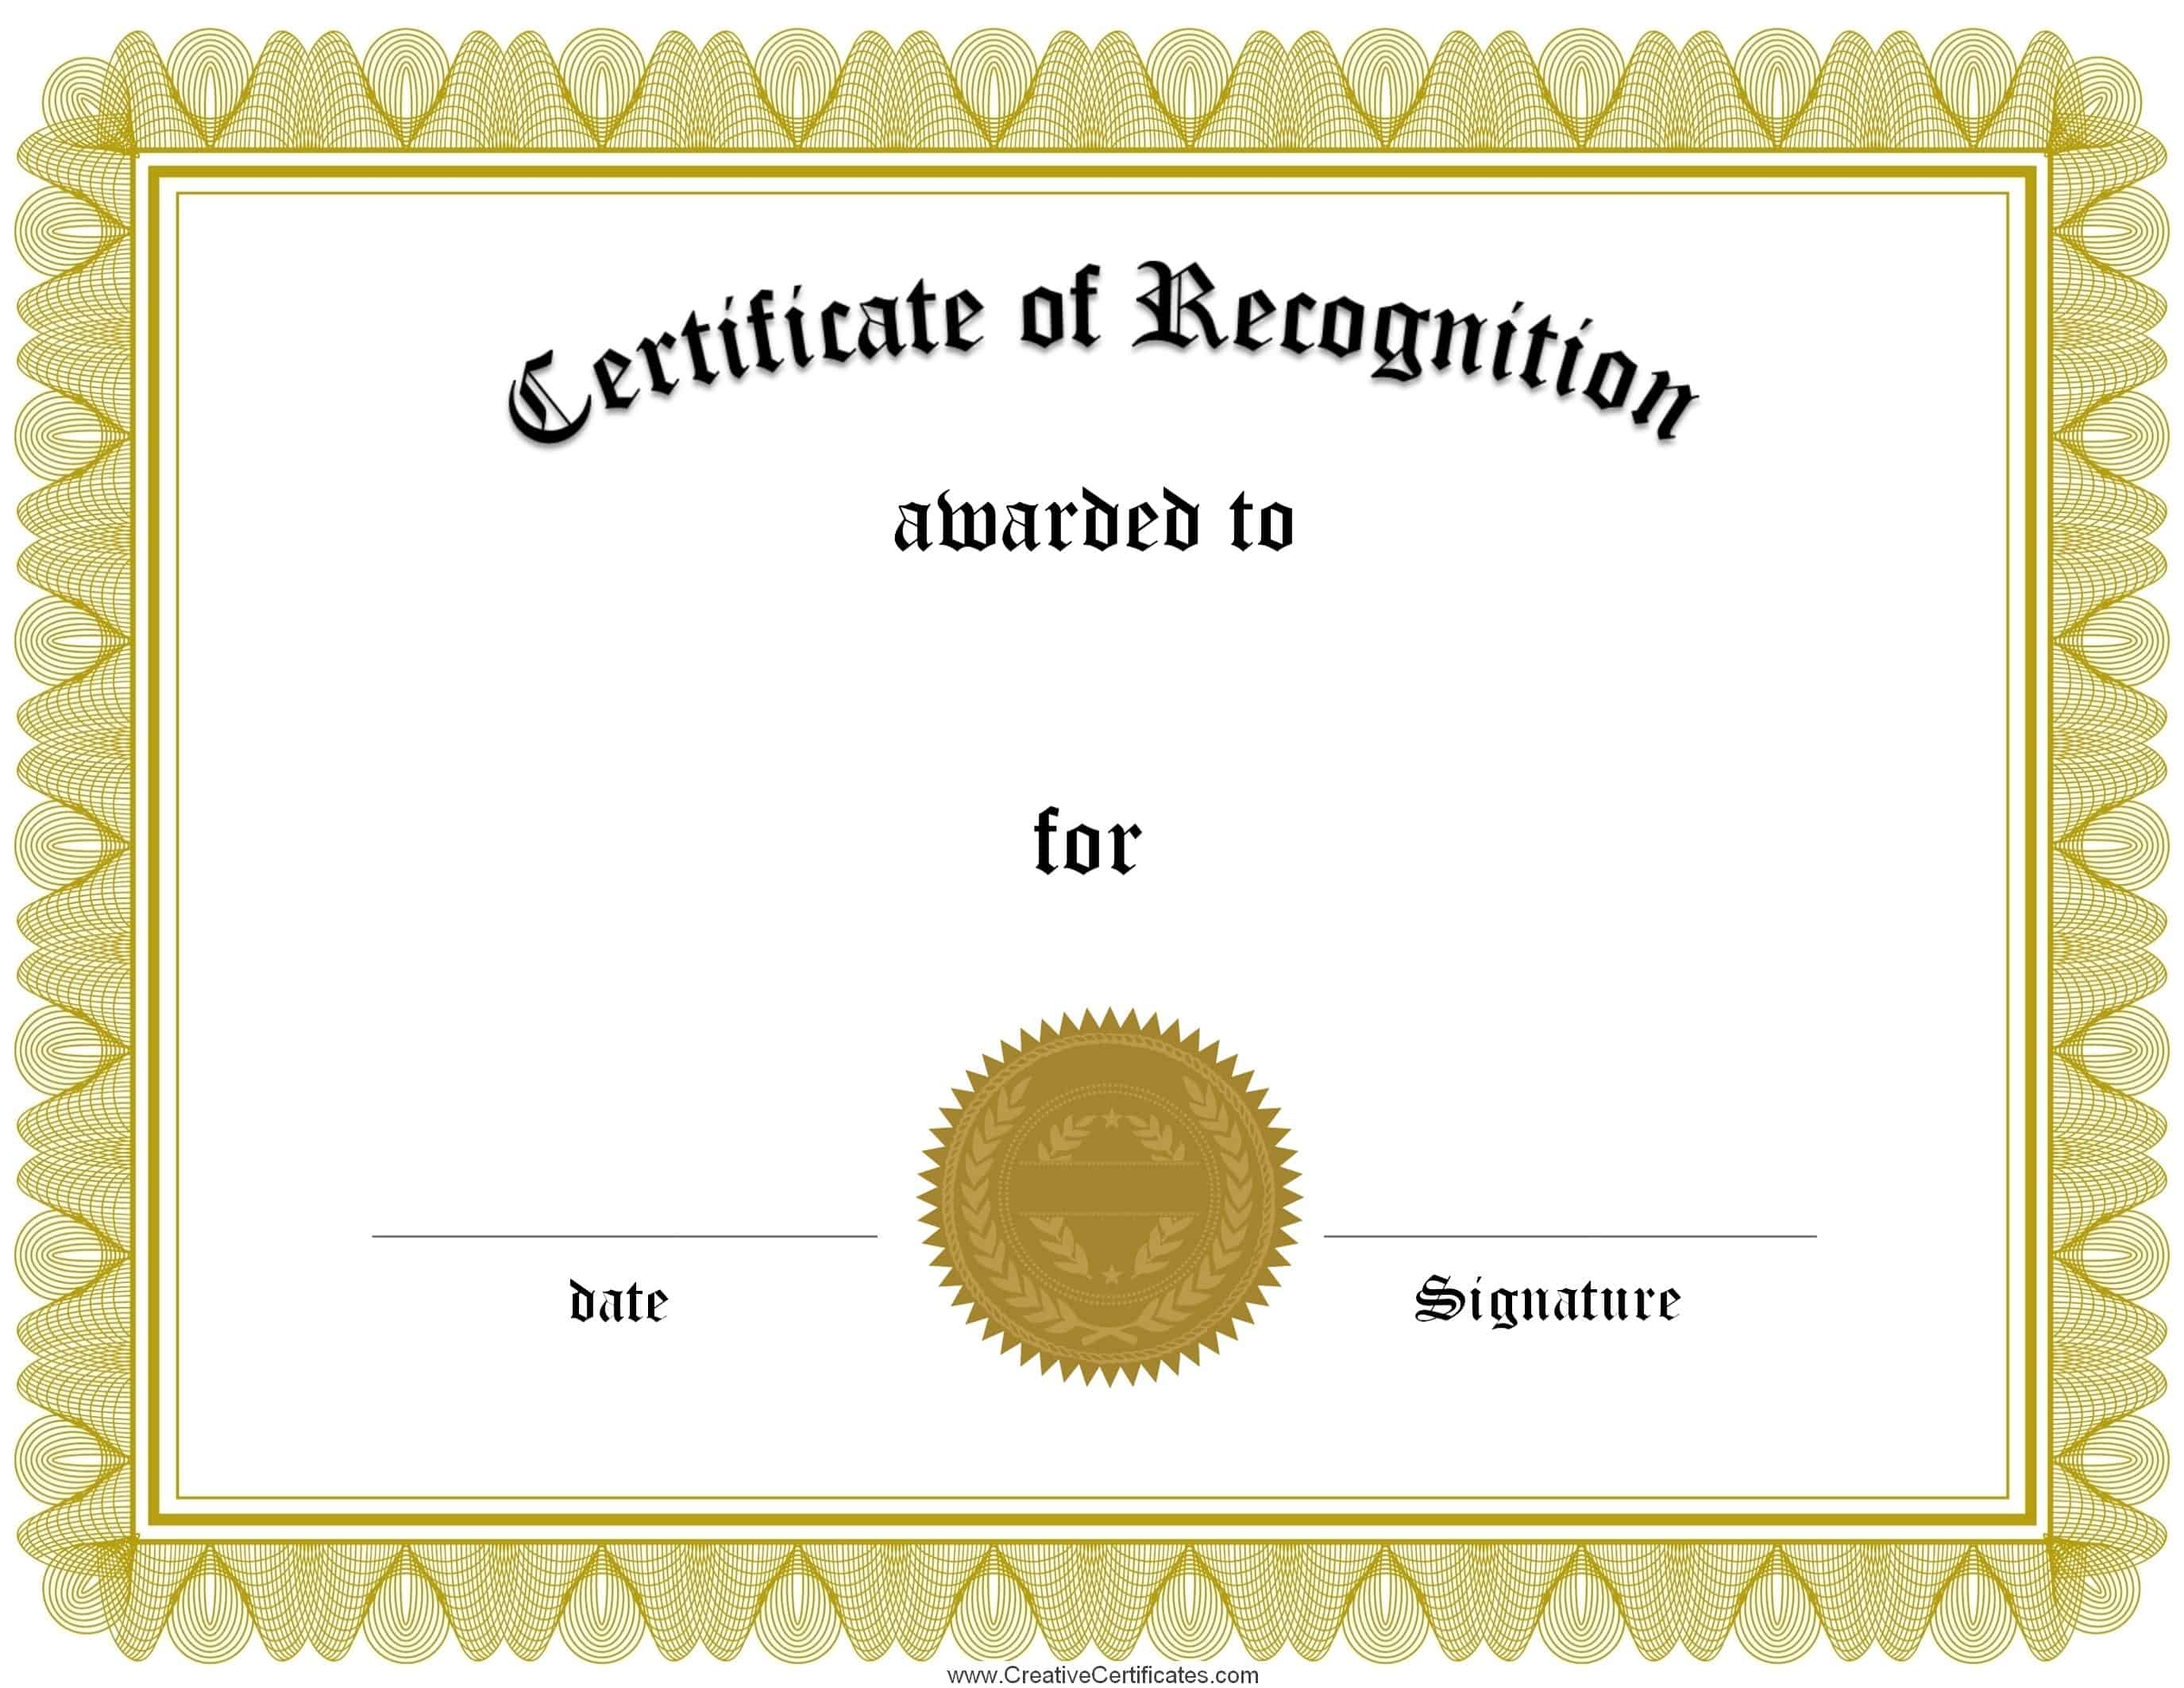 Ornate Gold Ideas Certificate Of Recognition Samples